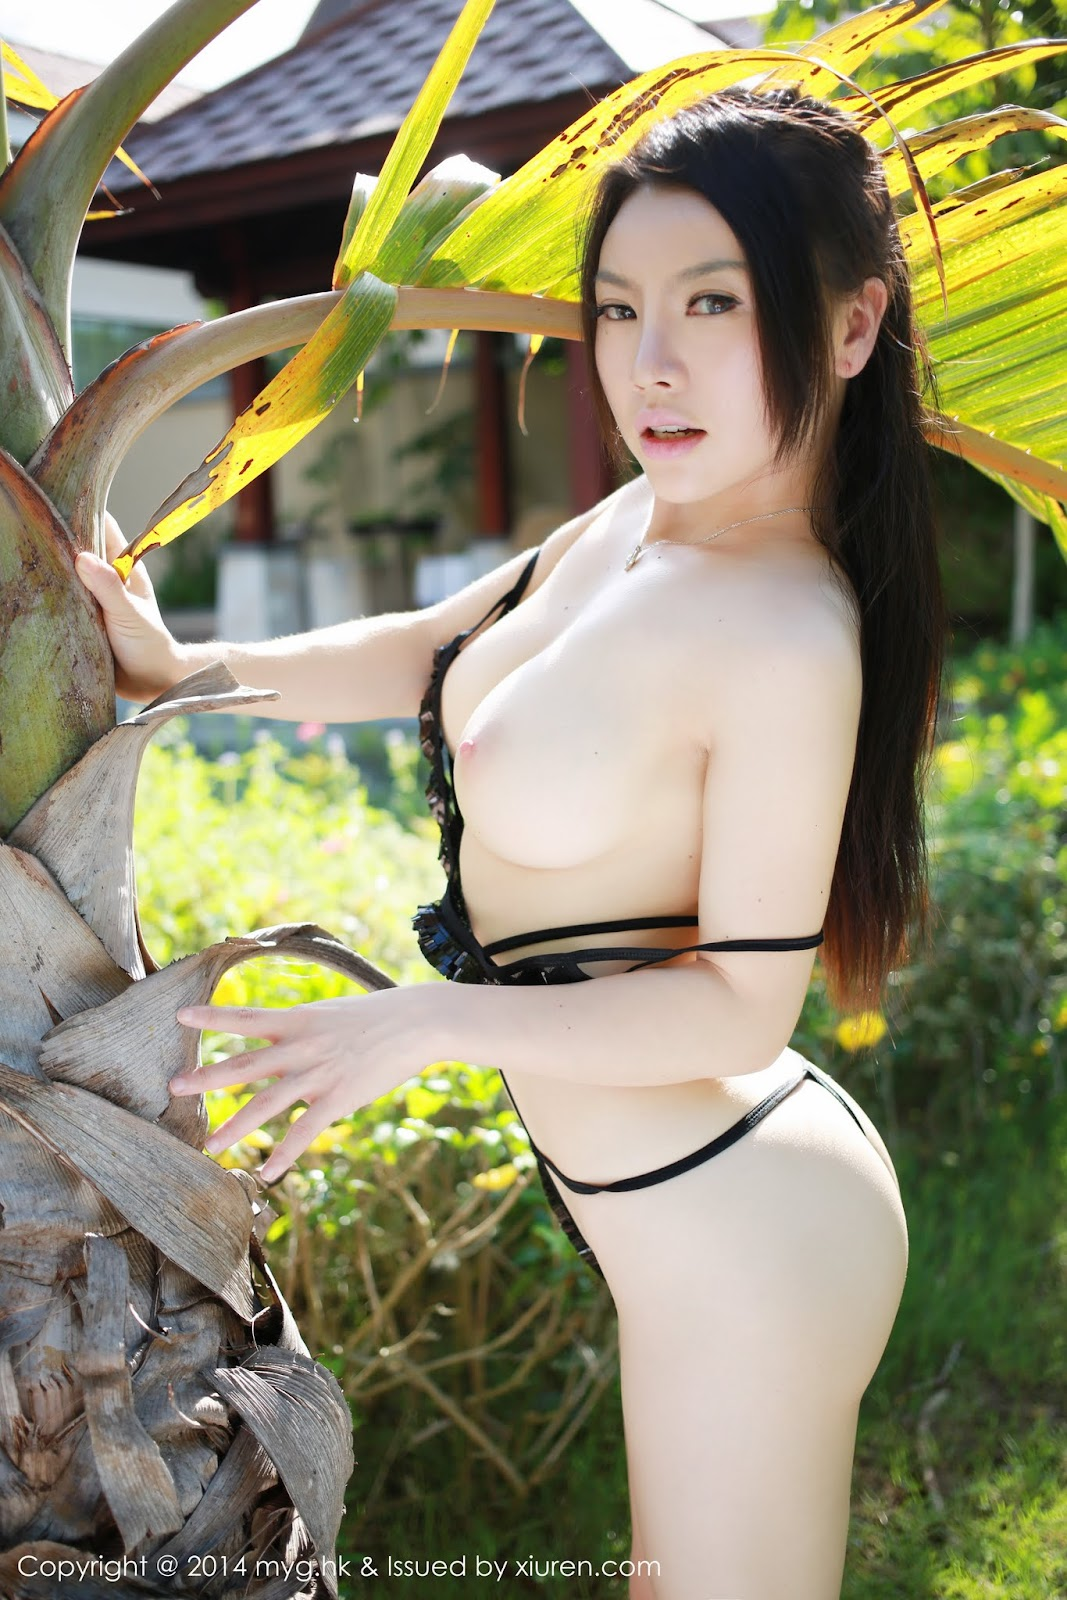 0122 - Hot Photo Model MYGIRL VOL.31